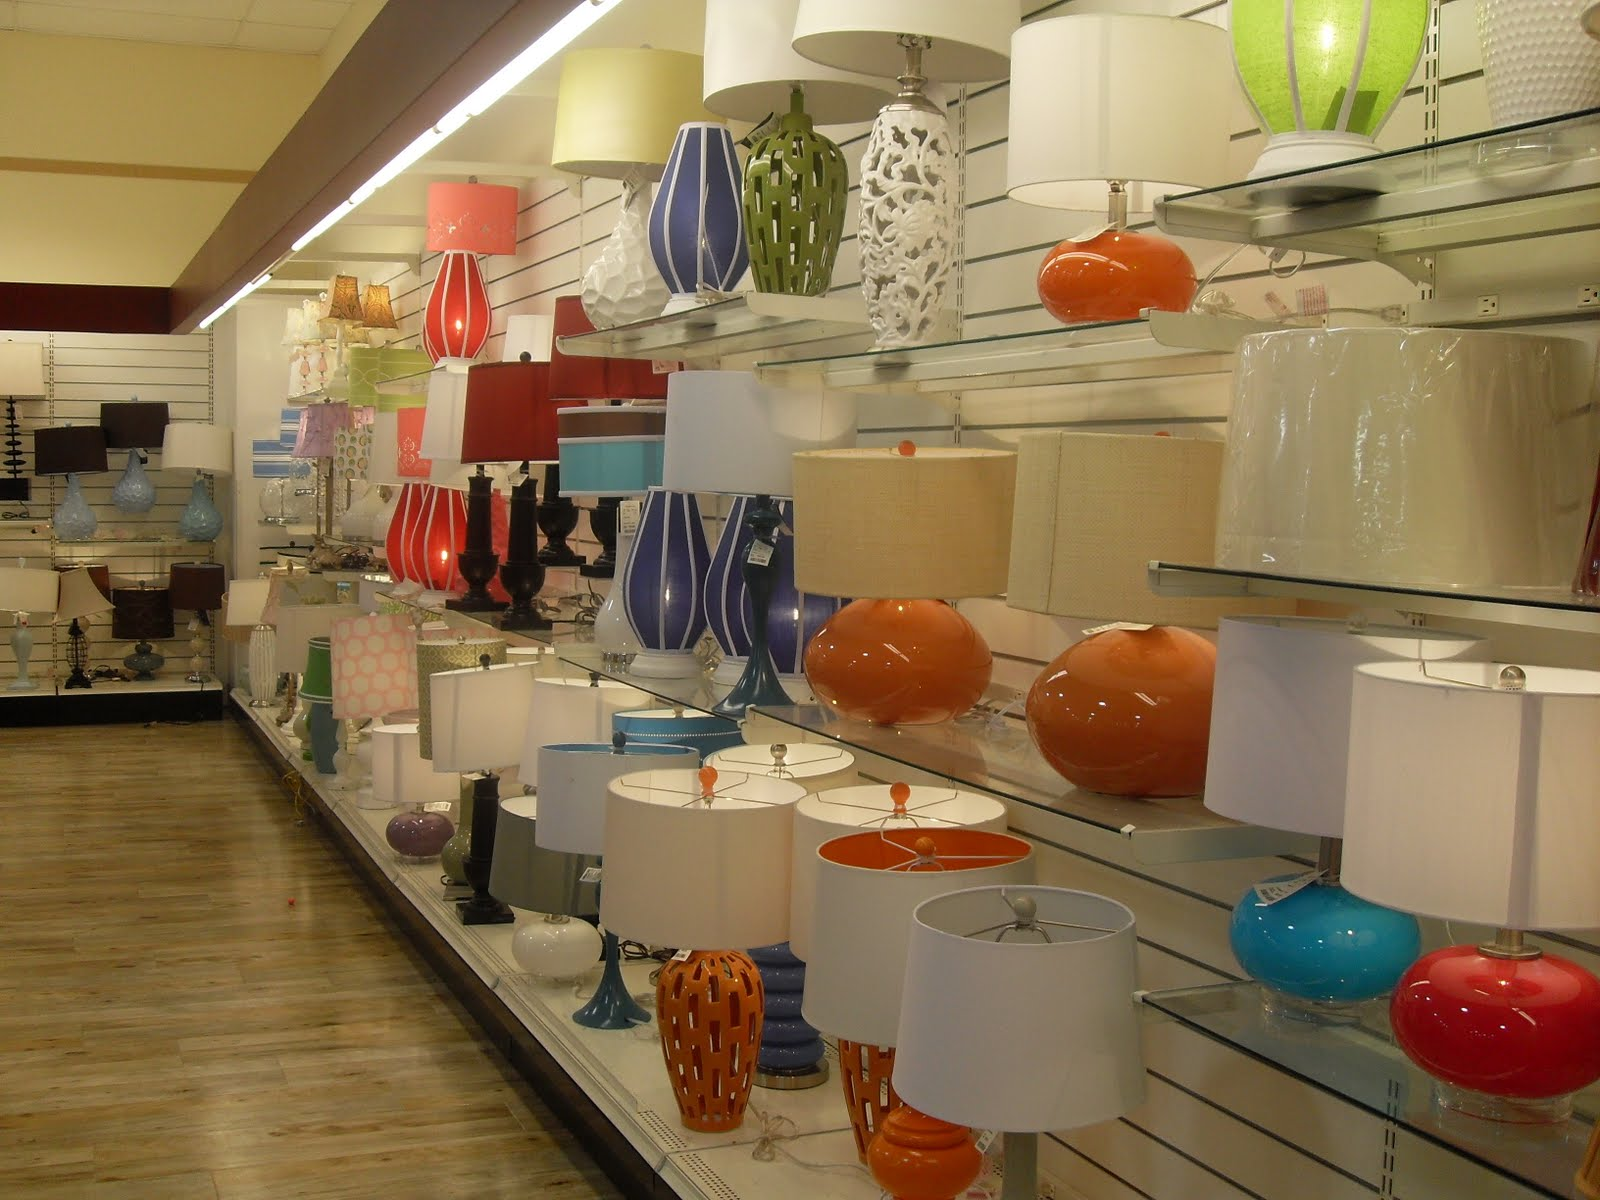 Here S A Glimpse At The Lamp Isle Homegoods I M Like Kid In Candy Every See All Those Delicious Colored Lamps